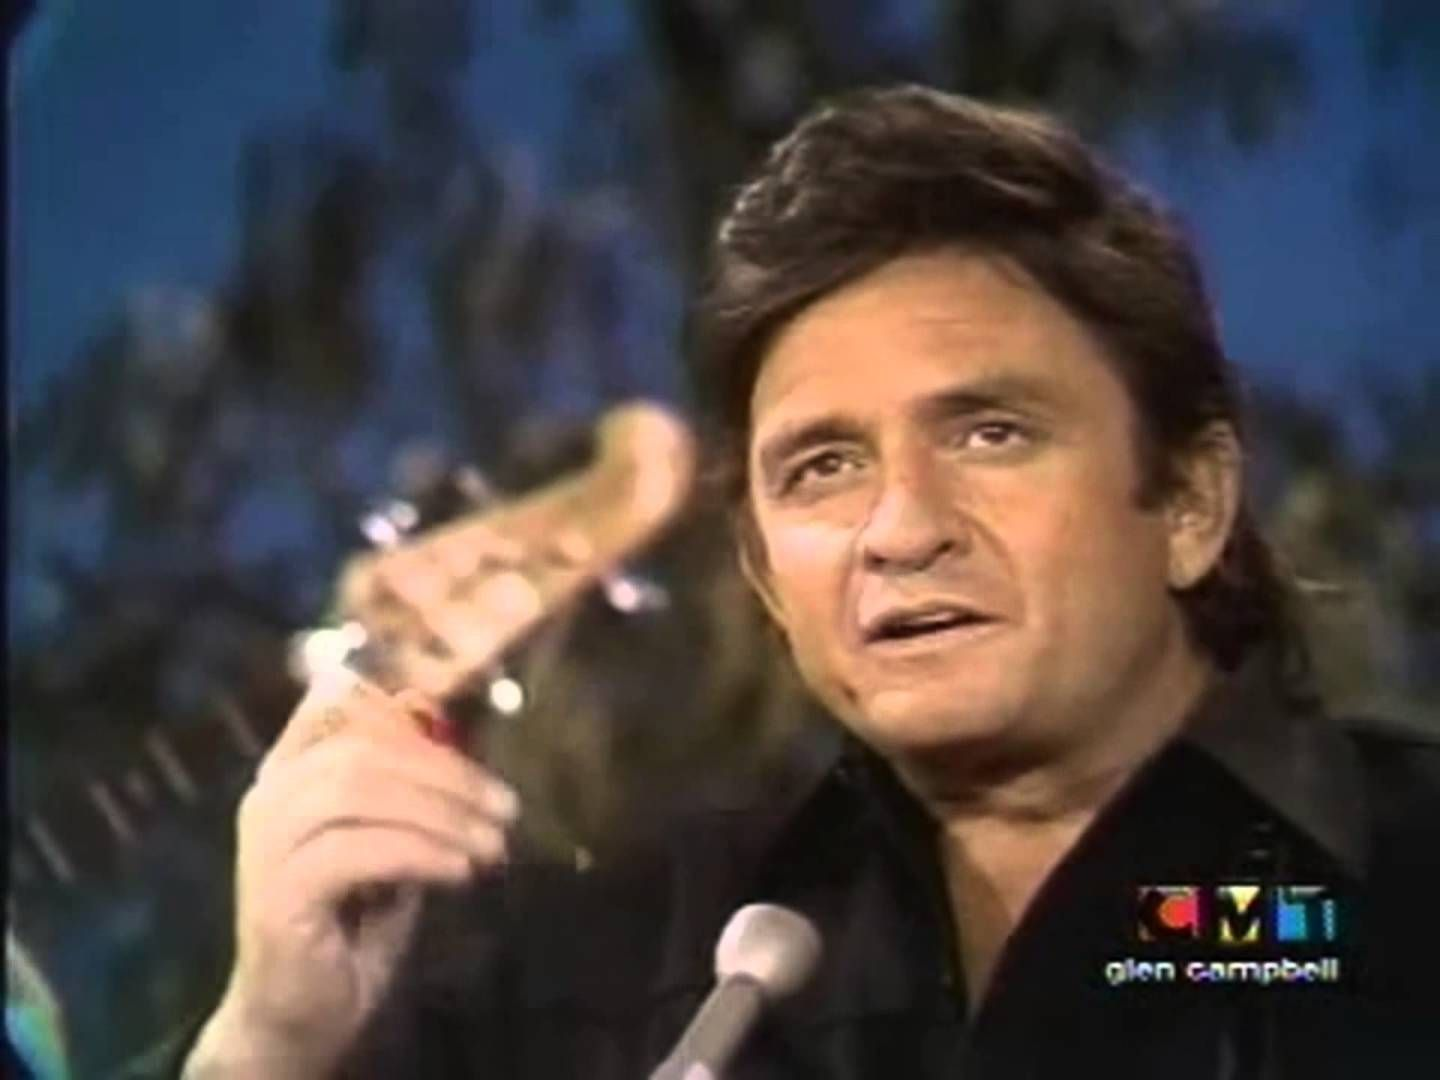 Johnny Cash A Thing Called Love Gospel Music Music Johnny